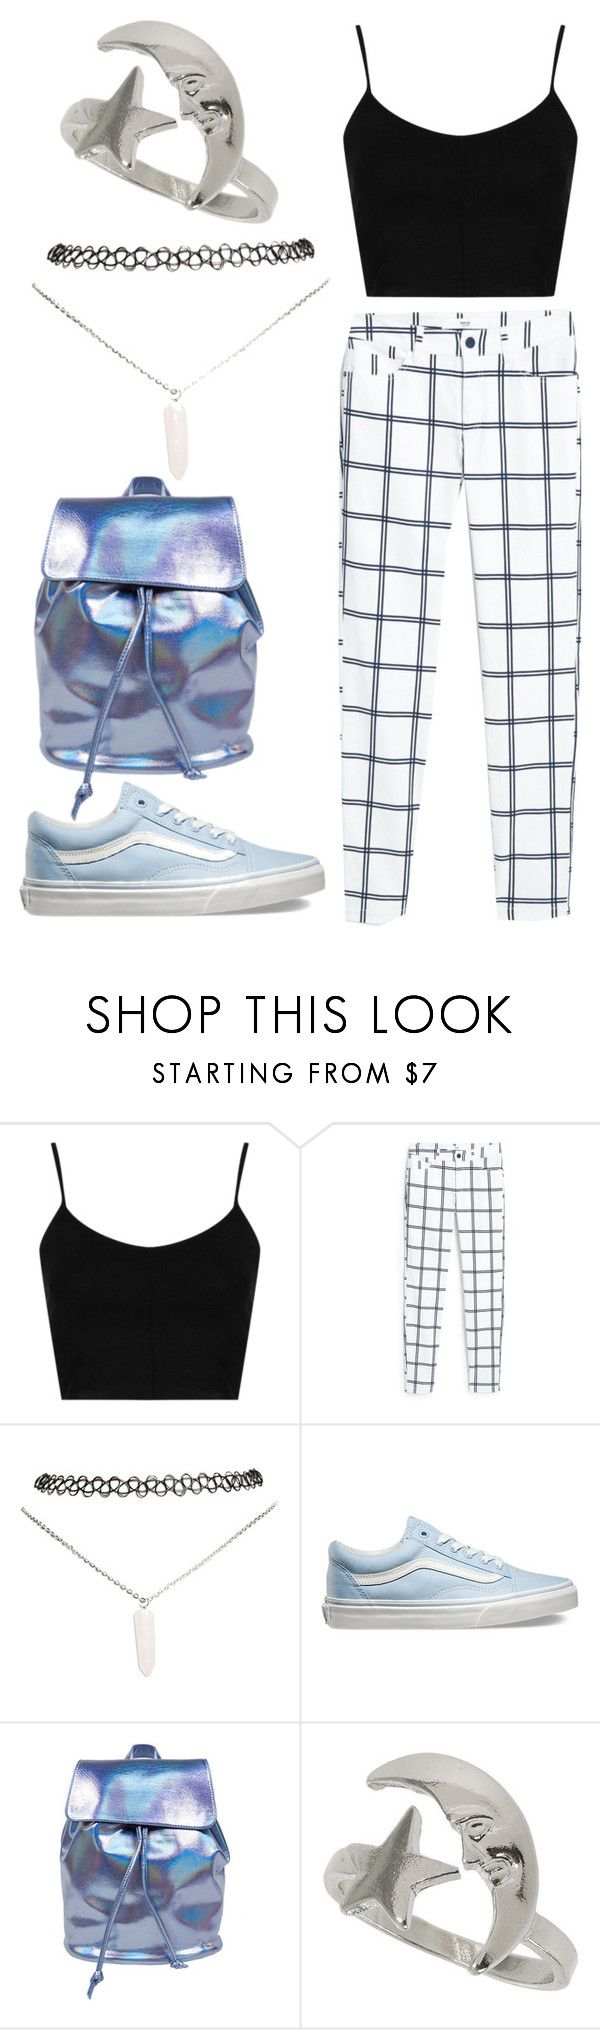 """&extra"" by angels-and-ametrines ❤ liked on Polyvore featuring Topshop, MANGO, Wet Seal and Vans"